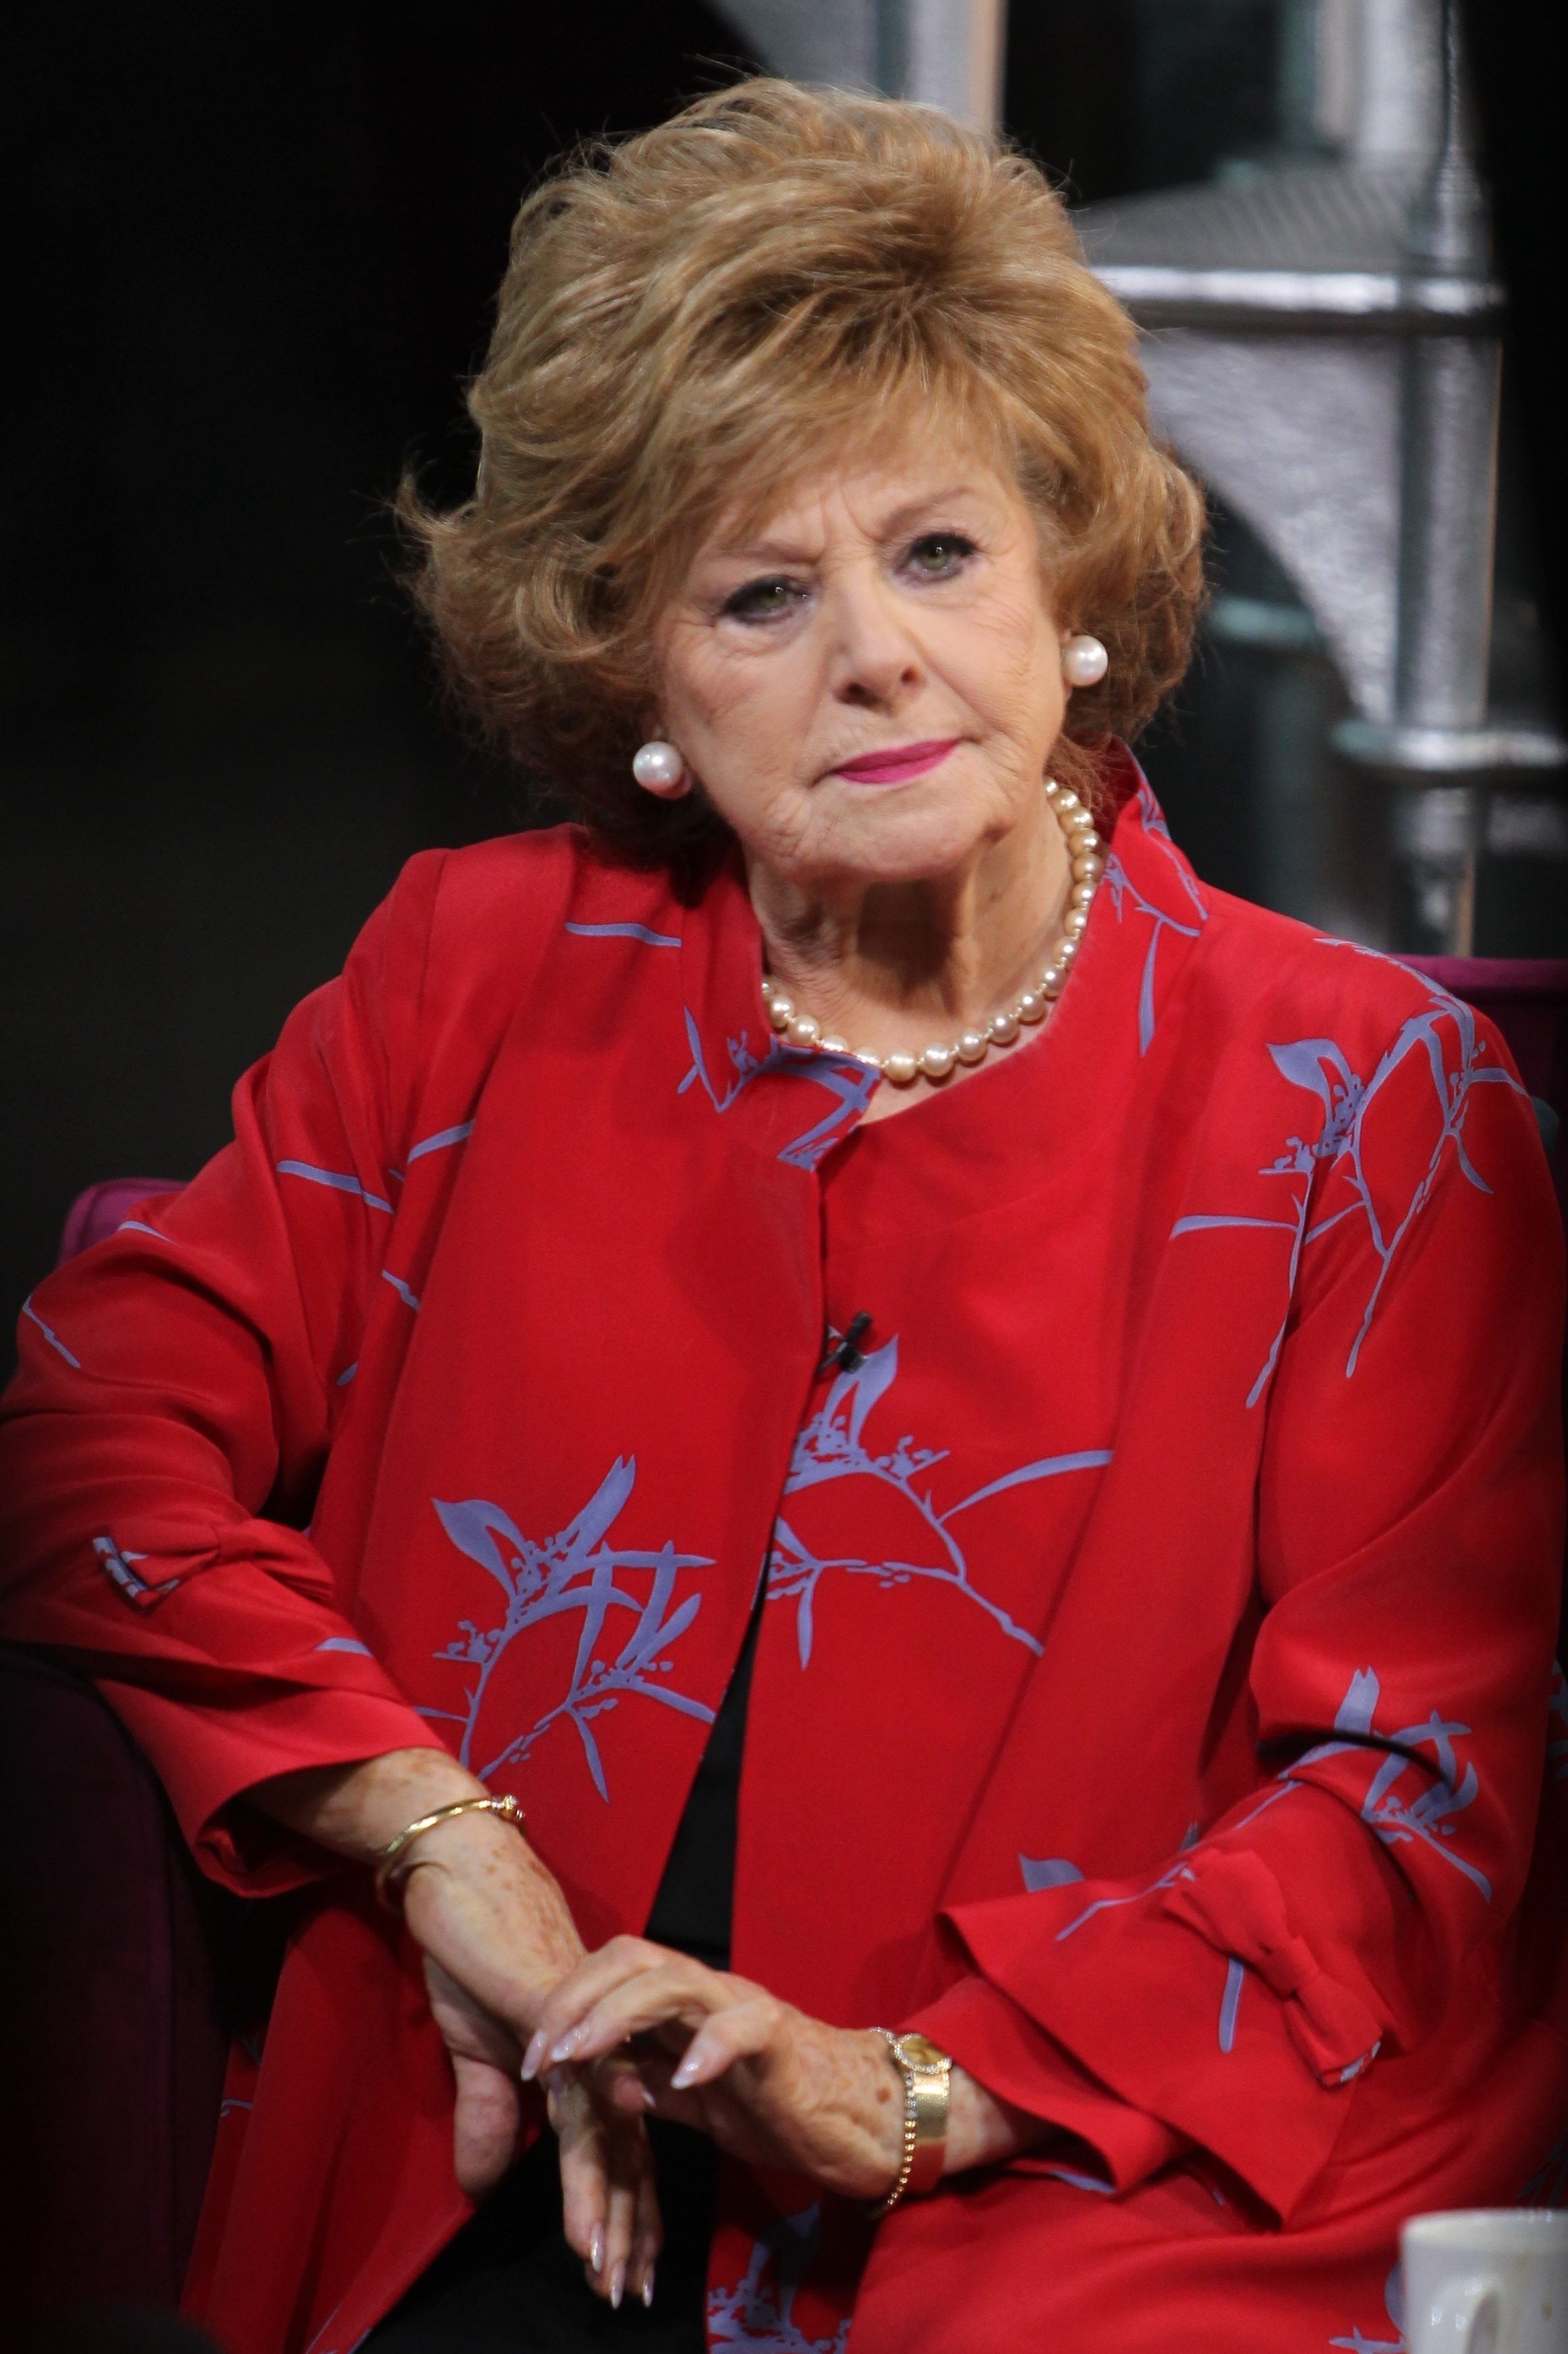 barbara knox dui